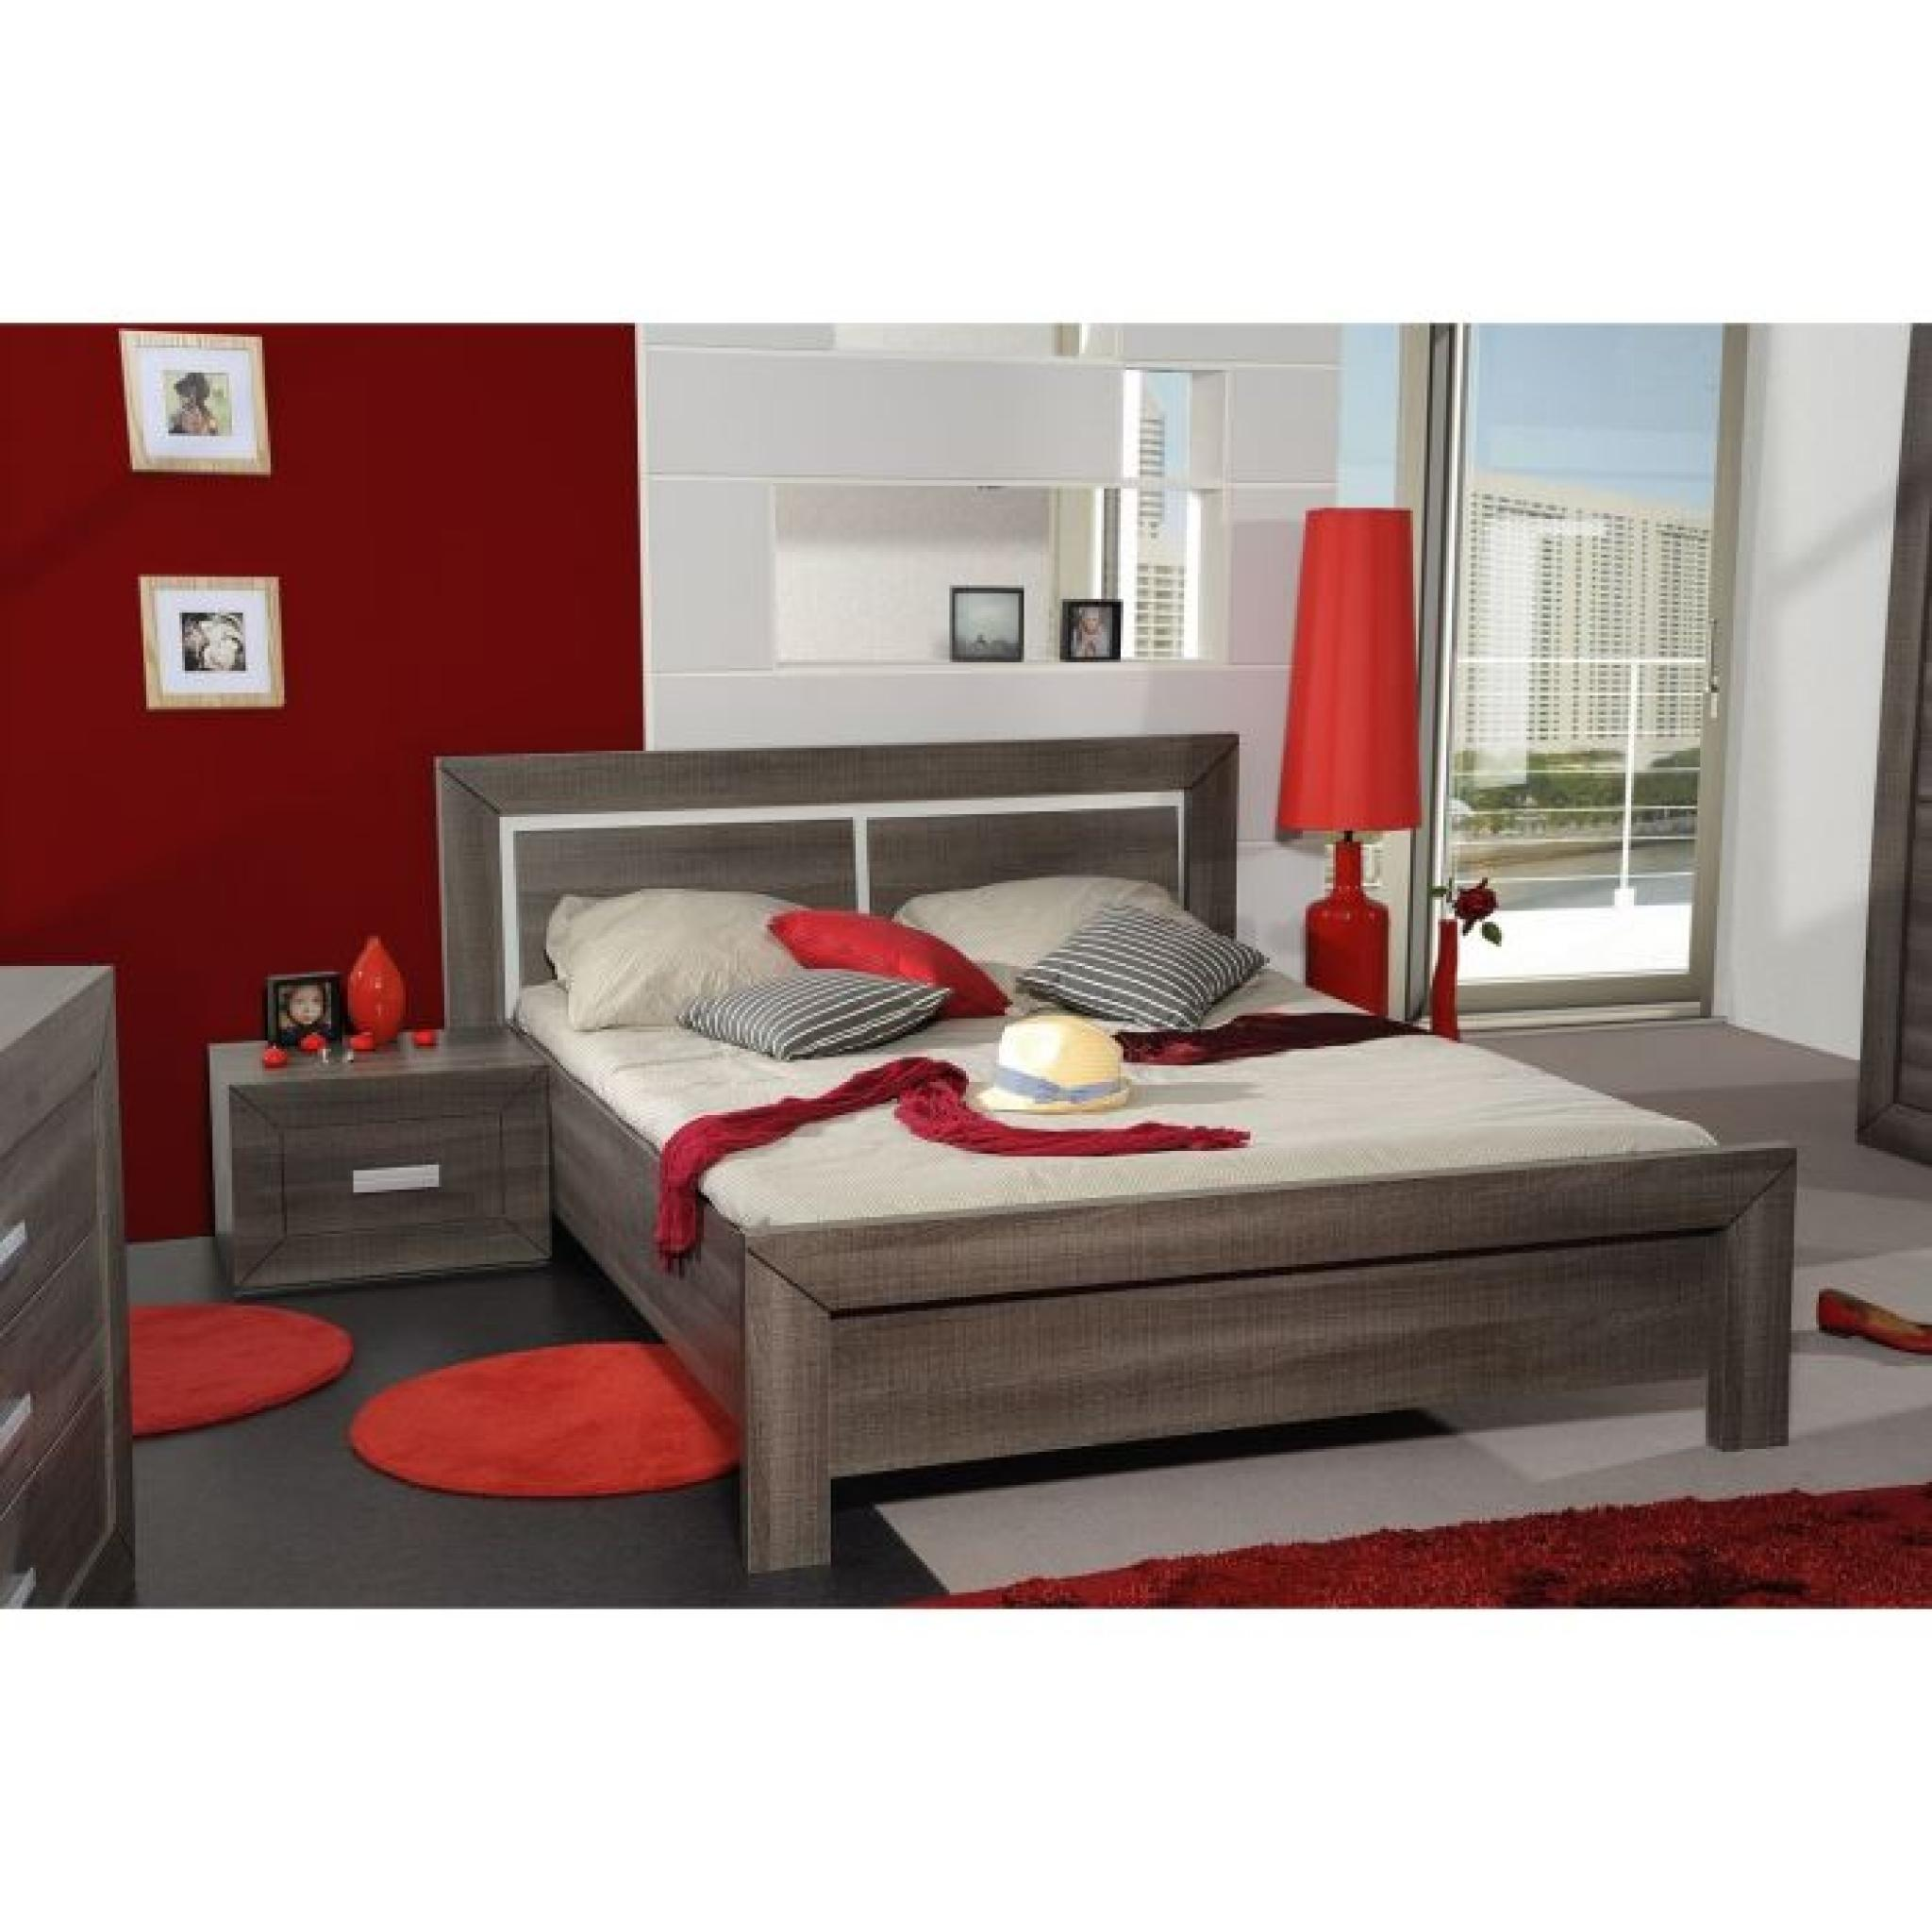 avignon lit adulte 140 x 190 cm coloris bois gris achat. Black Bedroom Furniture Sets. Home Design Ideas